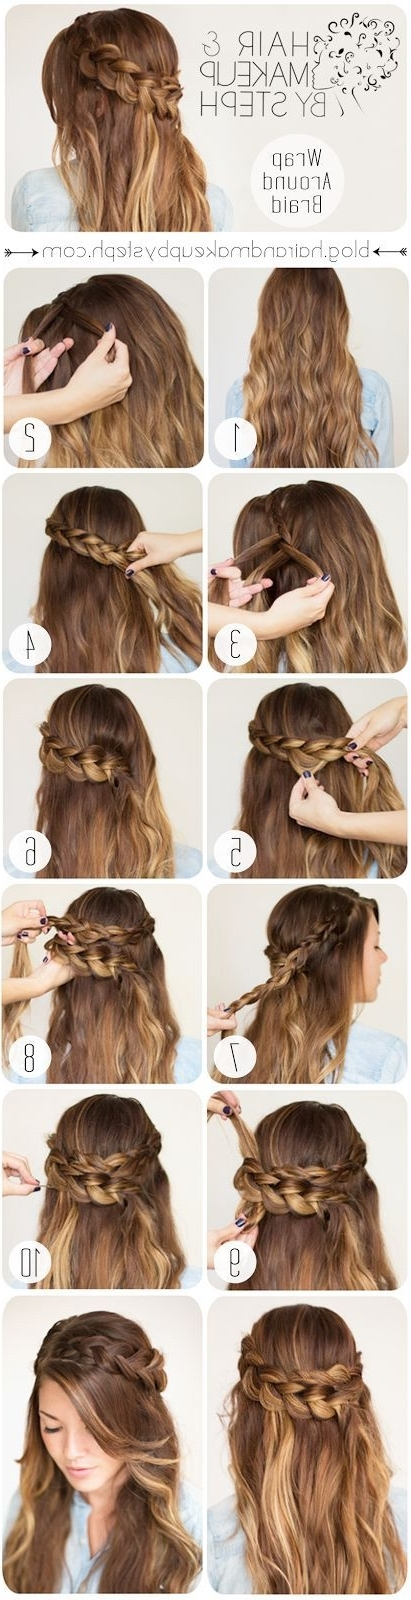 21 Tutorials For Styling Wrap Around Braids – Pretty Designs Intended For Pony Hairstyles With Wrap Around Braid For Short Hair (View 20 of 25)